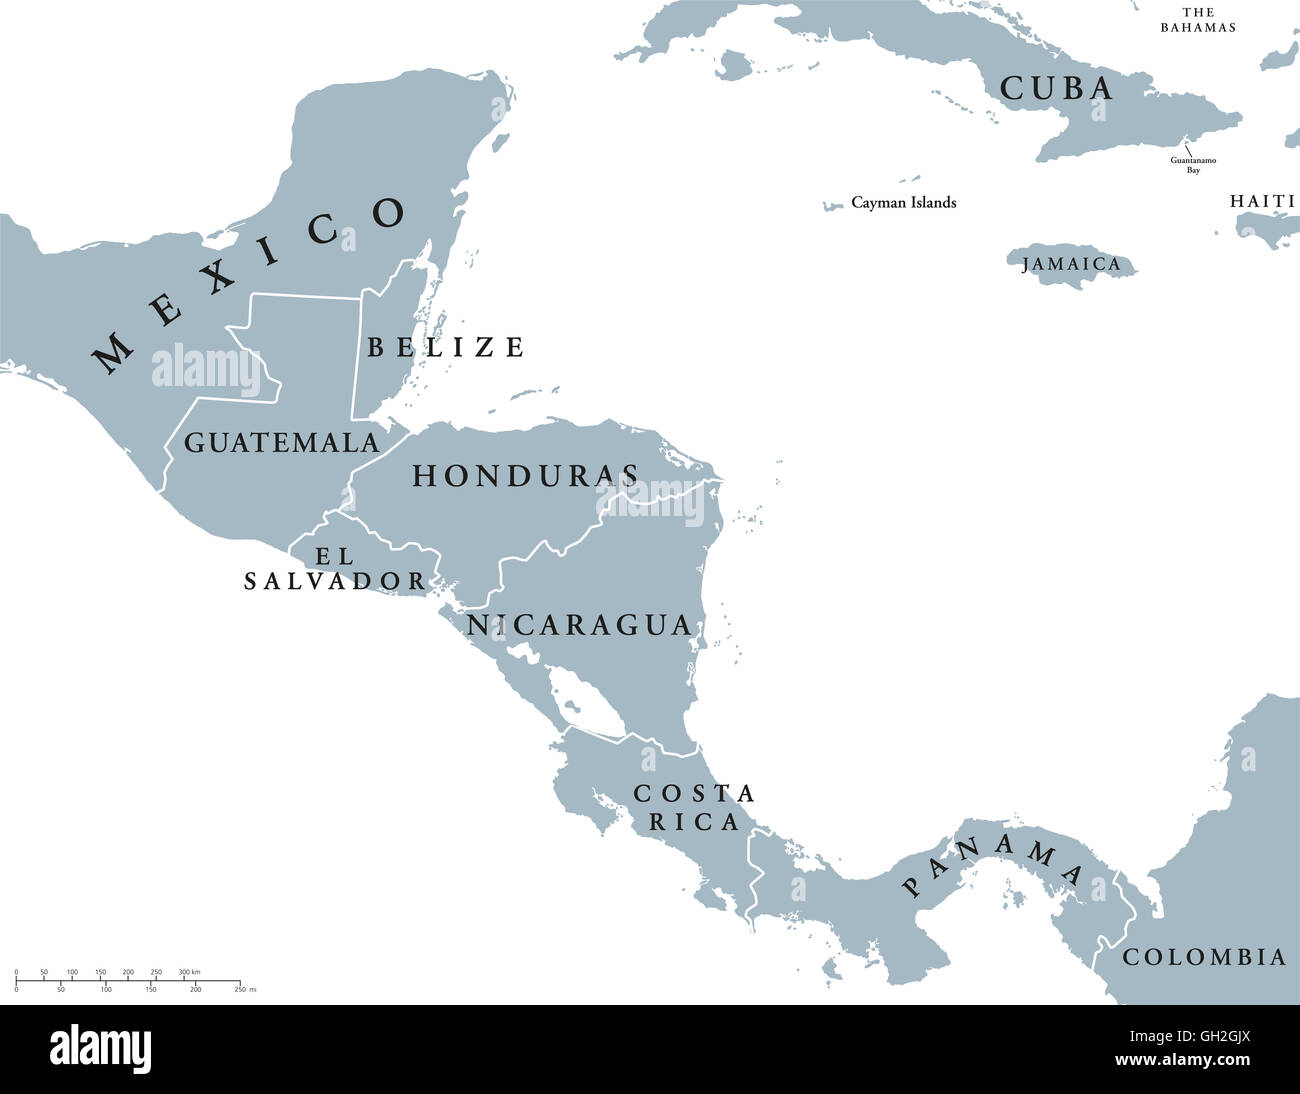 Belize map stock photos belize map stock images alamy central america countries political map with national borders from mexico to colombia connecting north gumiabroncs Images